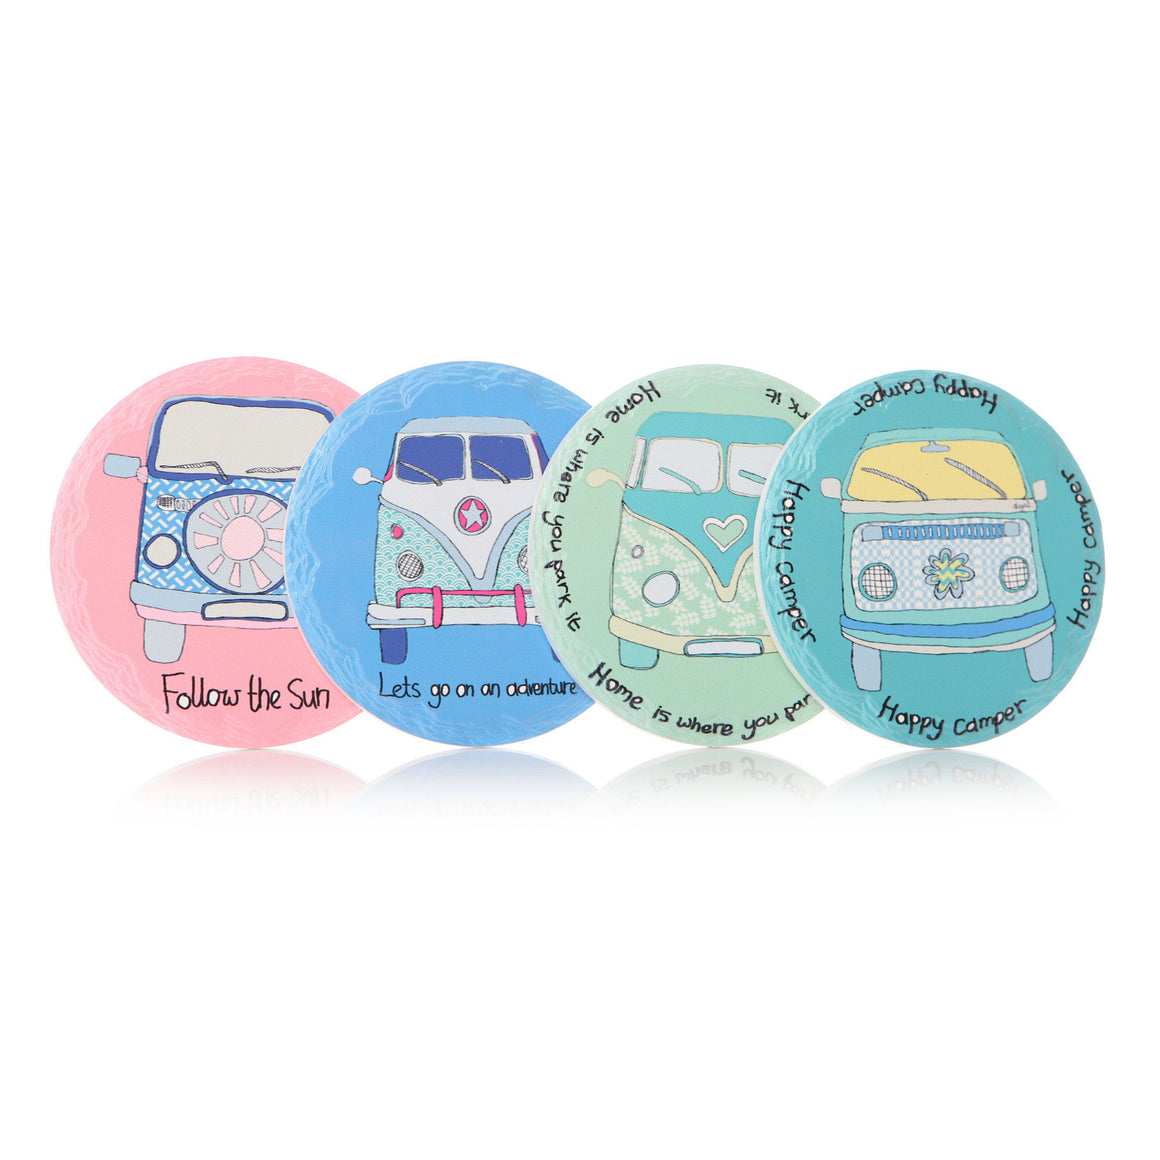 Set of 4 Round Happy Camper Coasters